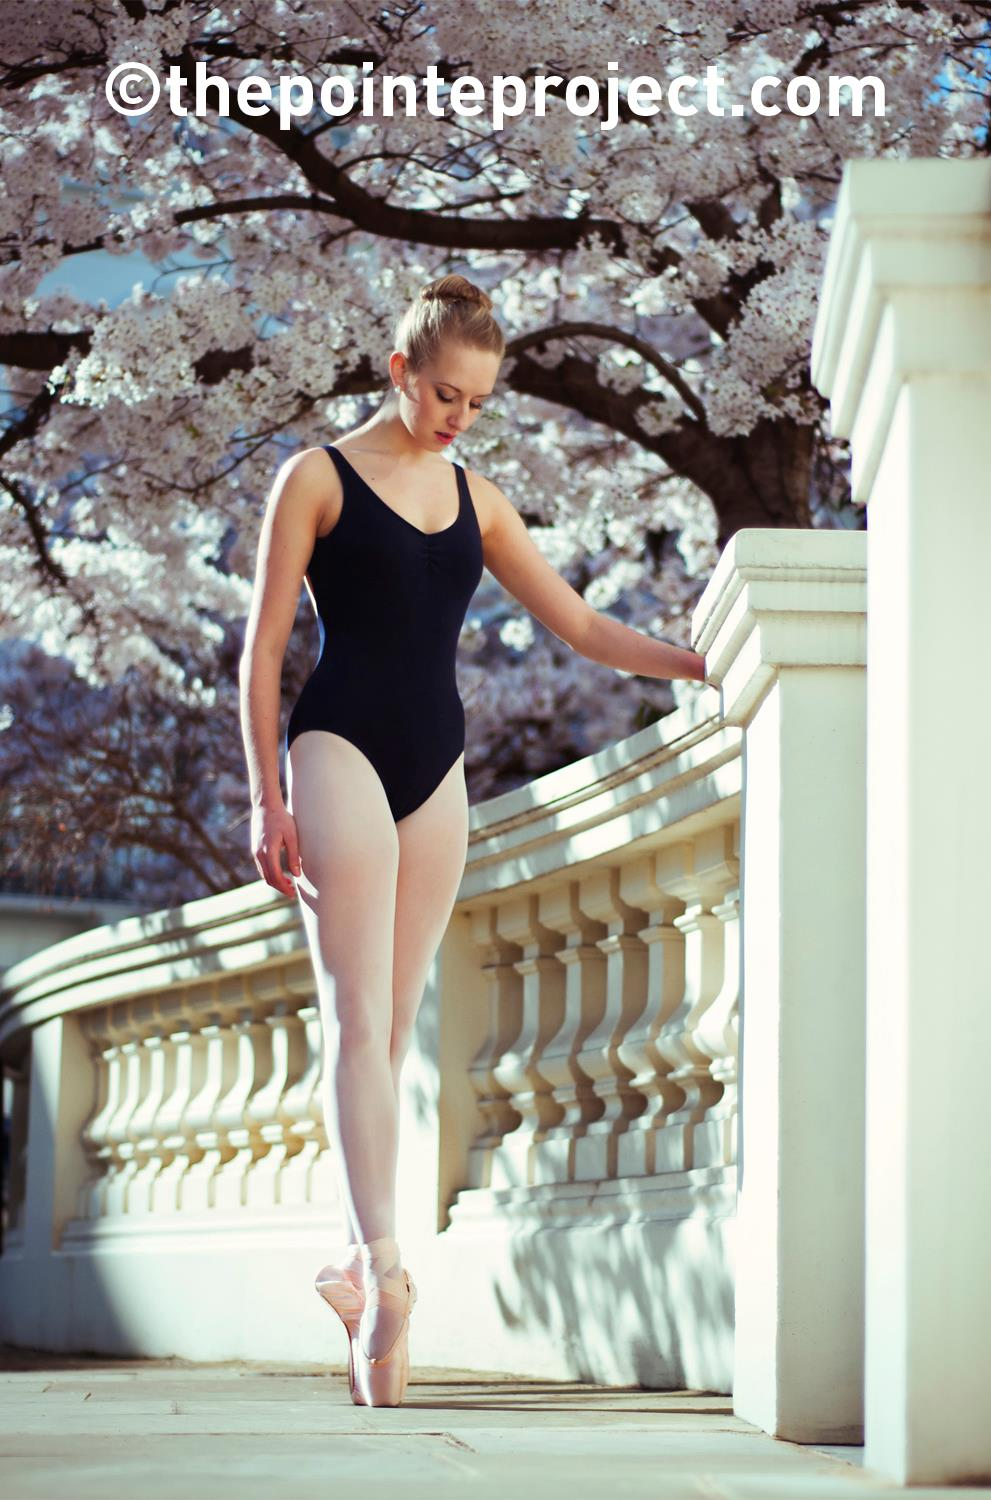 the pointe project ballet photography by pete bartlett like the ballerina project